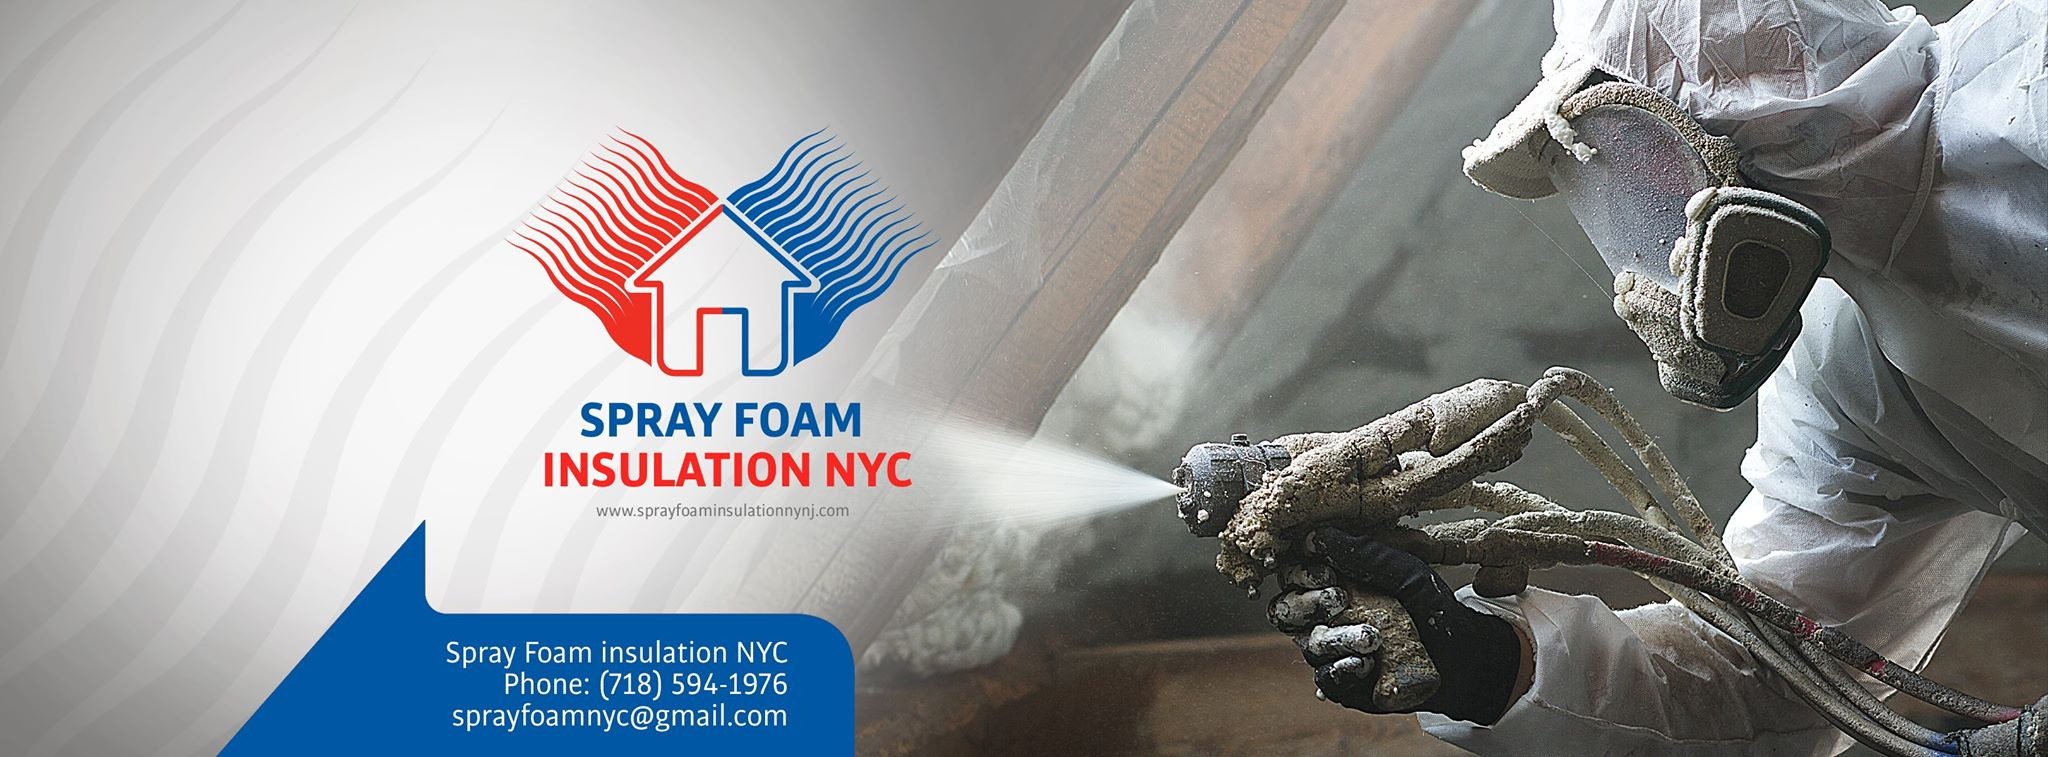 Spray Foam Insulation Nyc New York New Jersey Long Island Ny